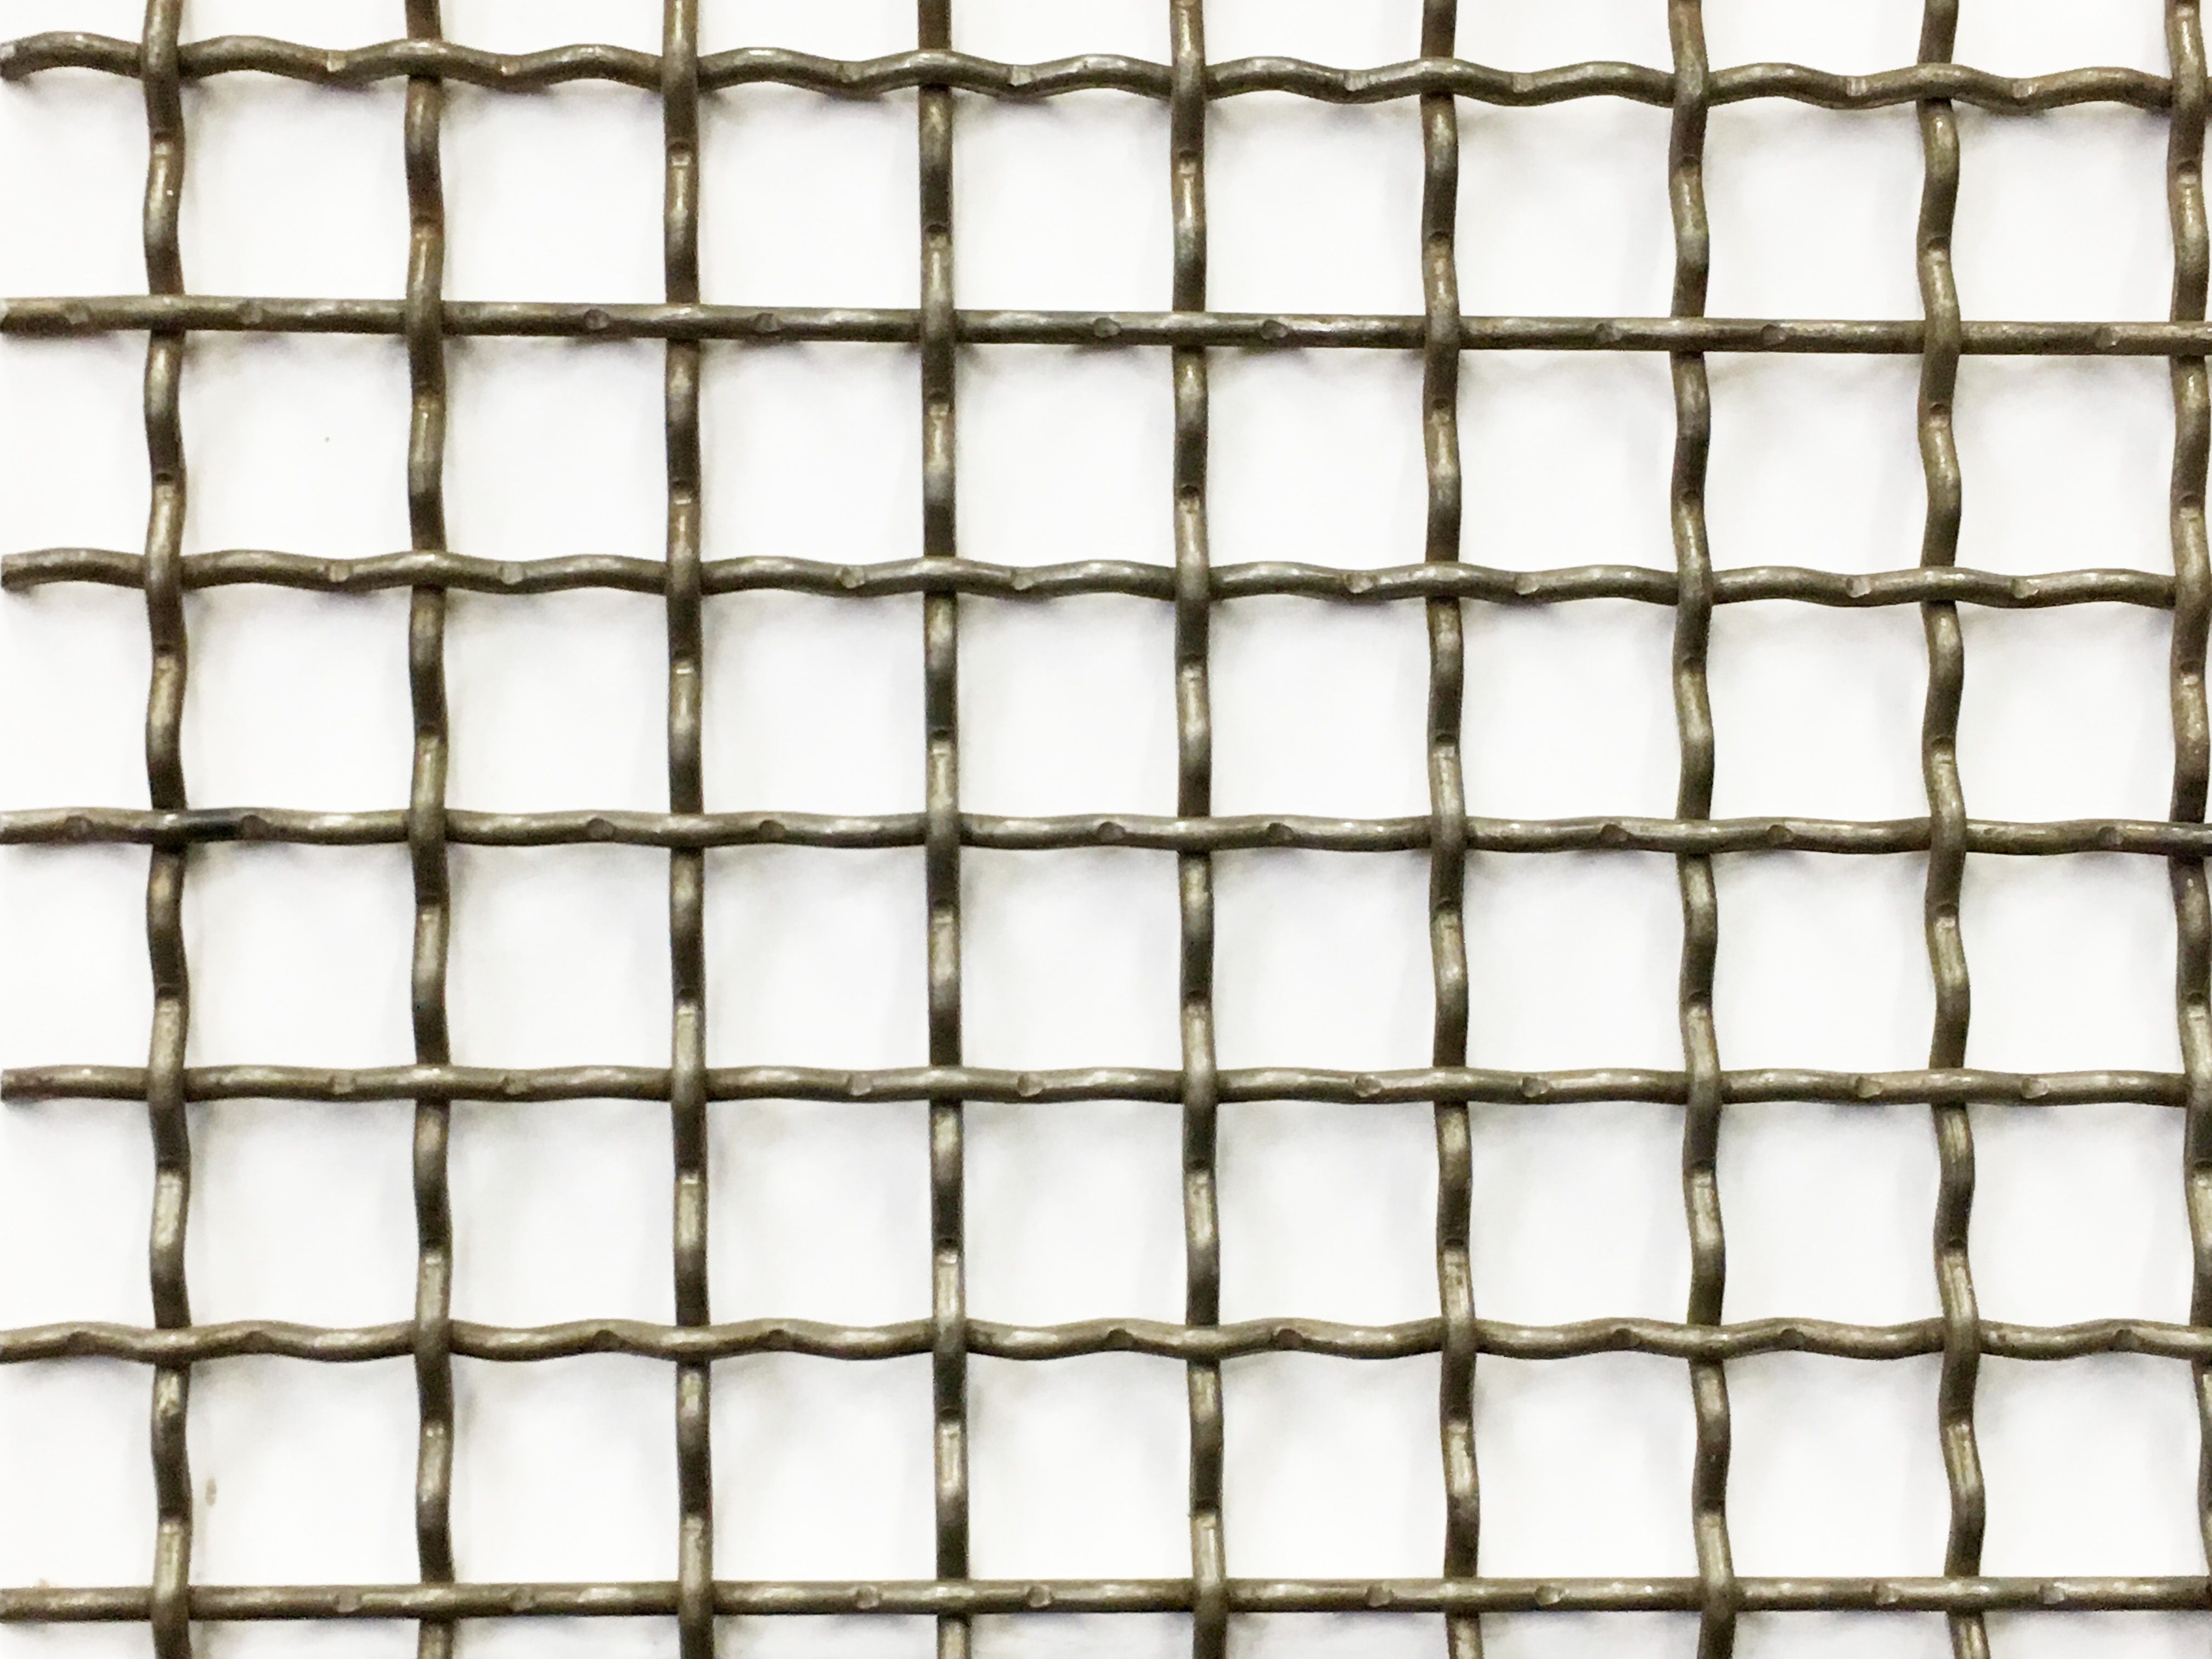 Wire Mesh | Welded & Woven Wire | Industrial Metal Supply | Project ...